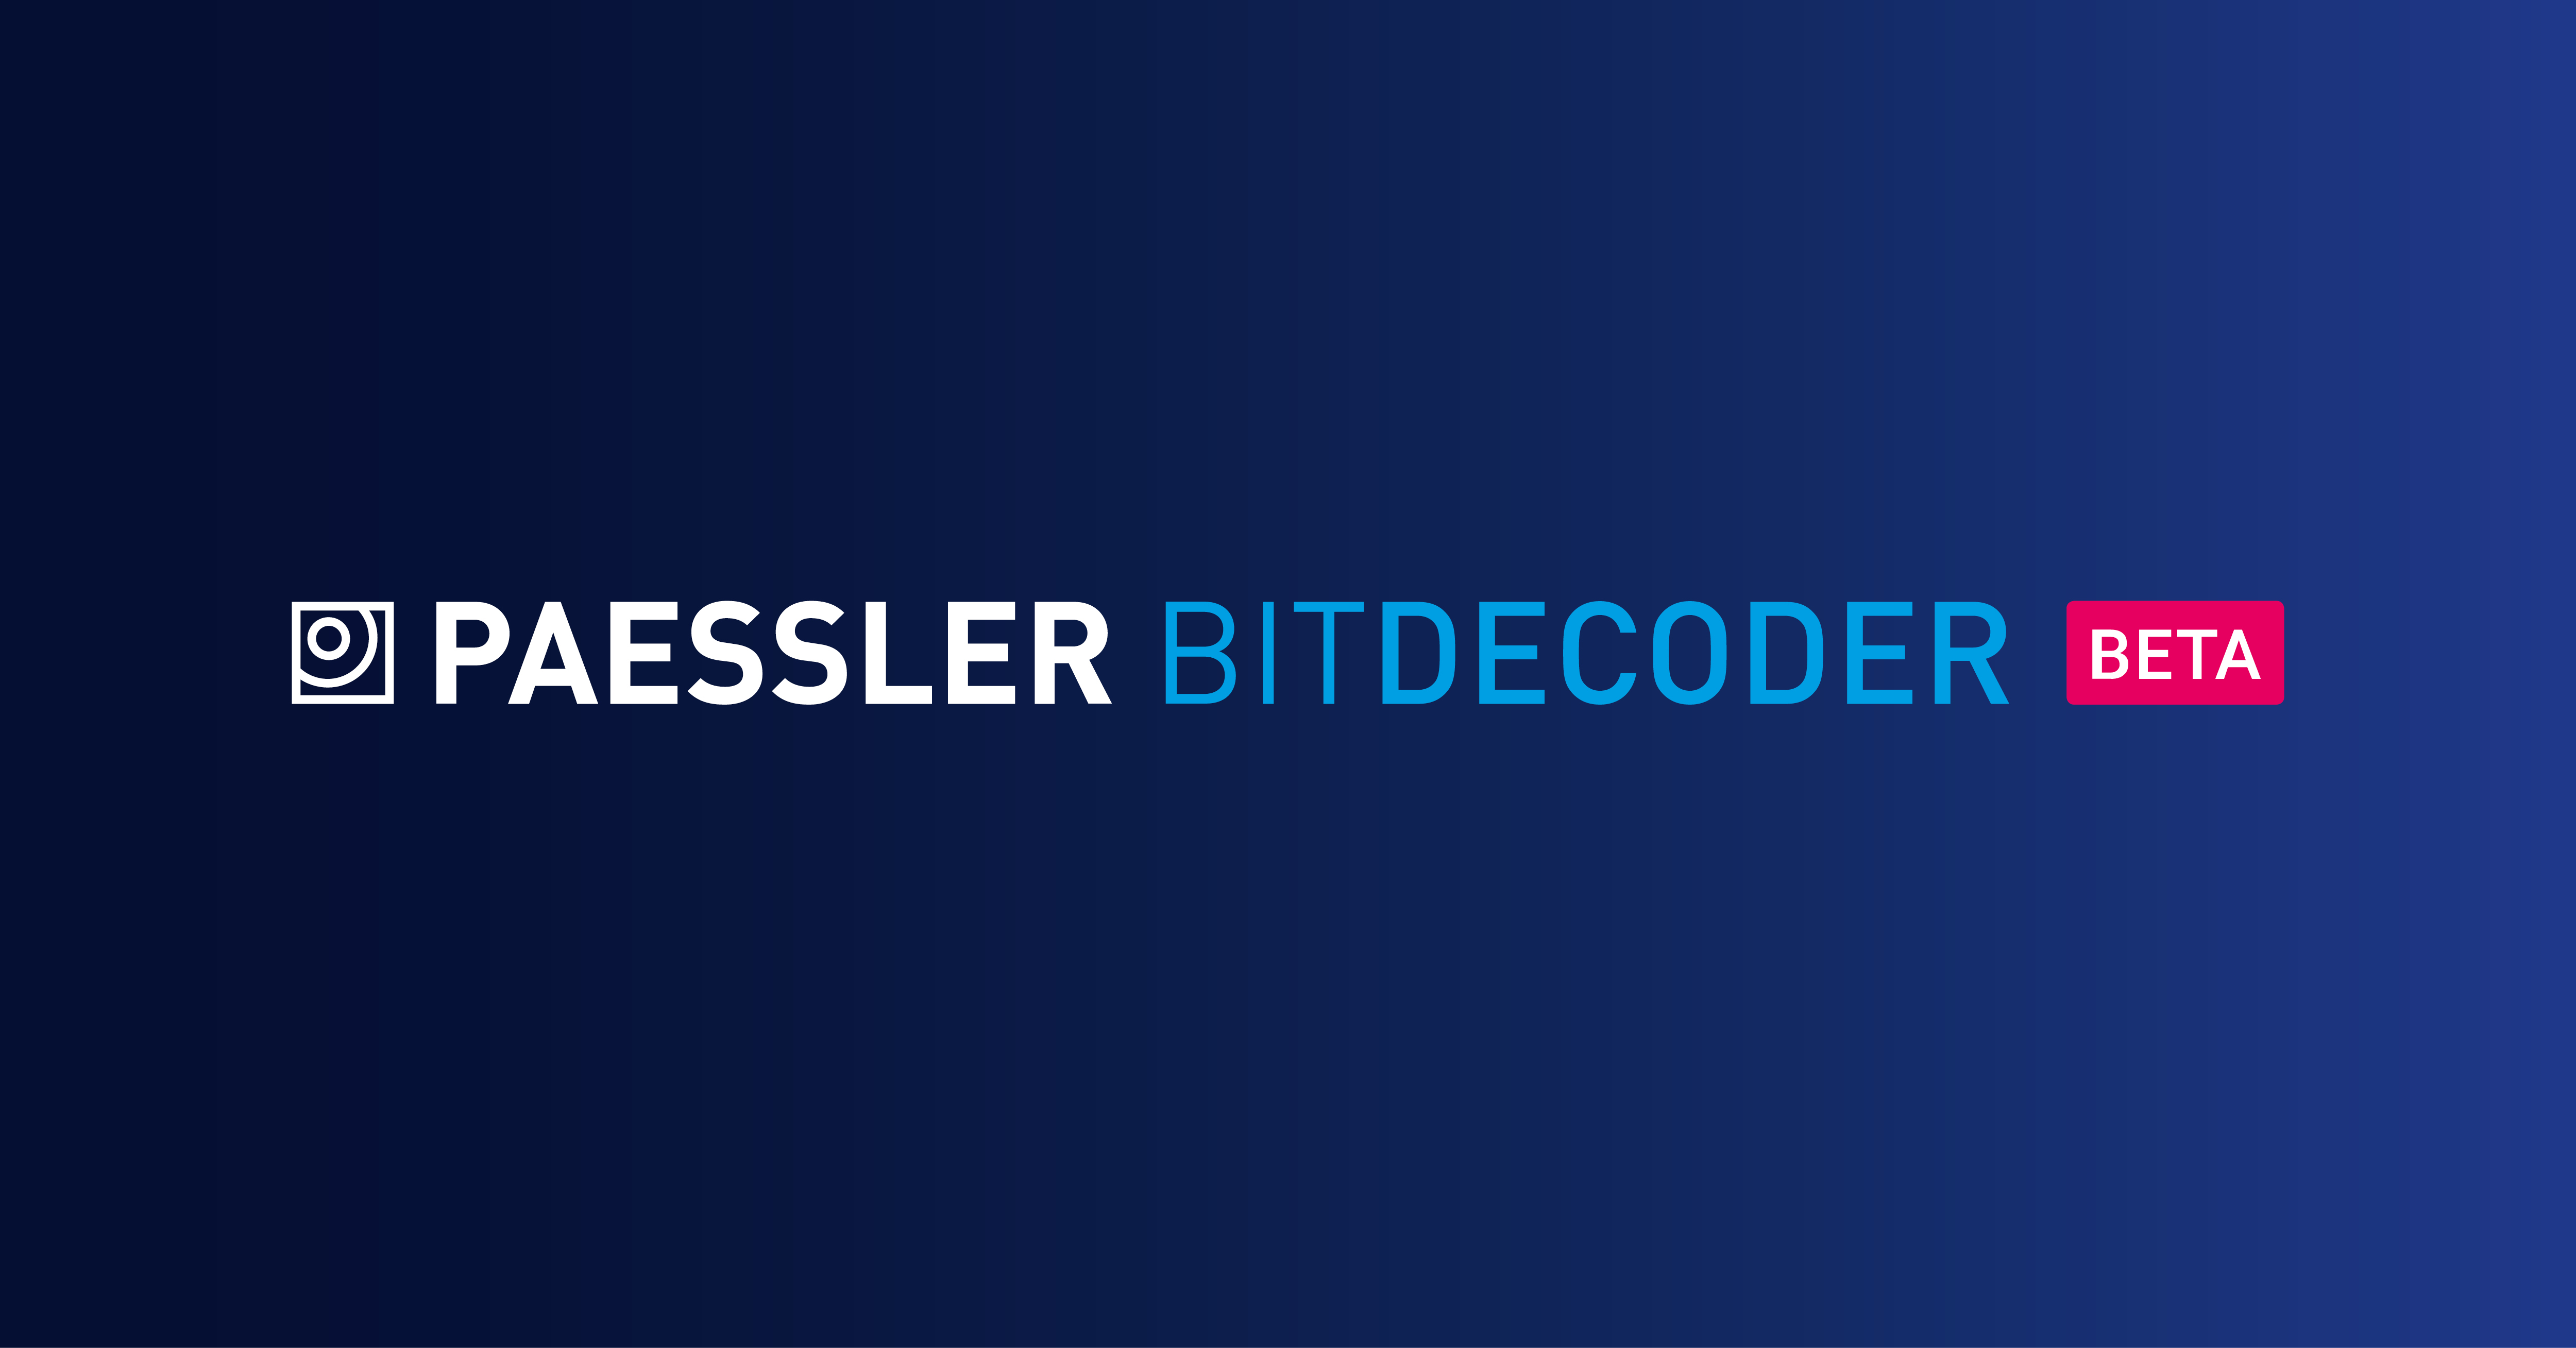 Join the public BETA of BitDecoder - Easy translation of IoT data into visual formats